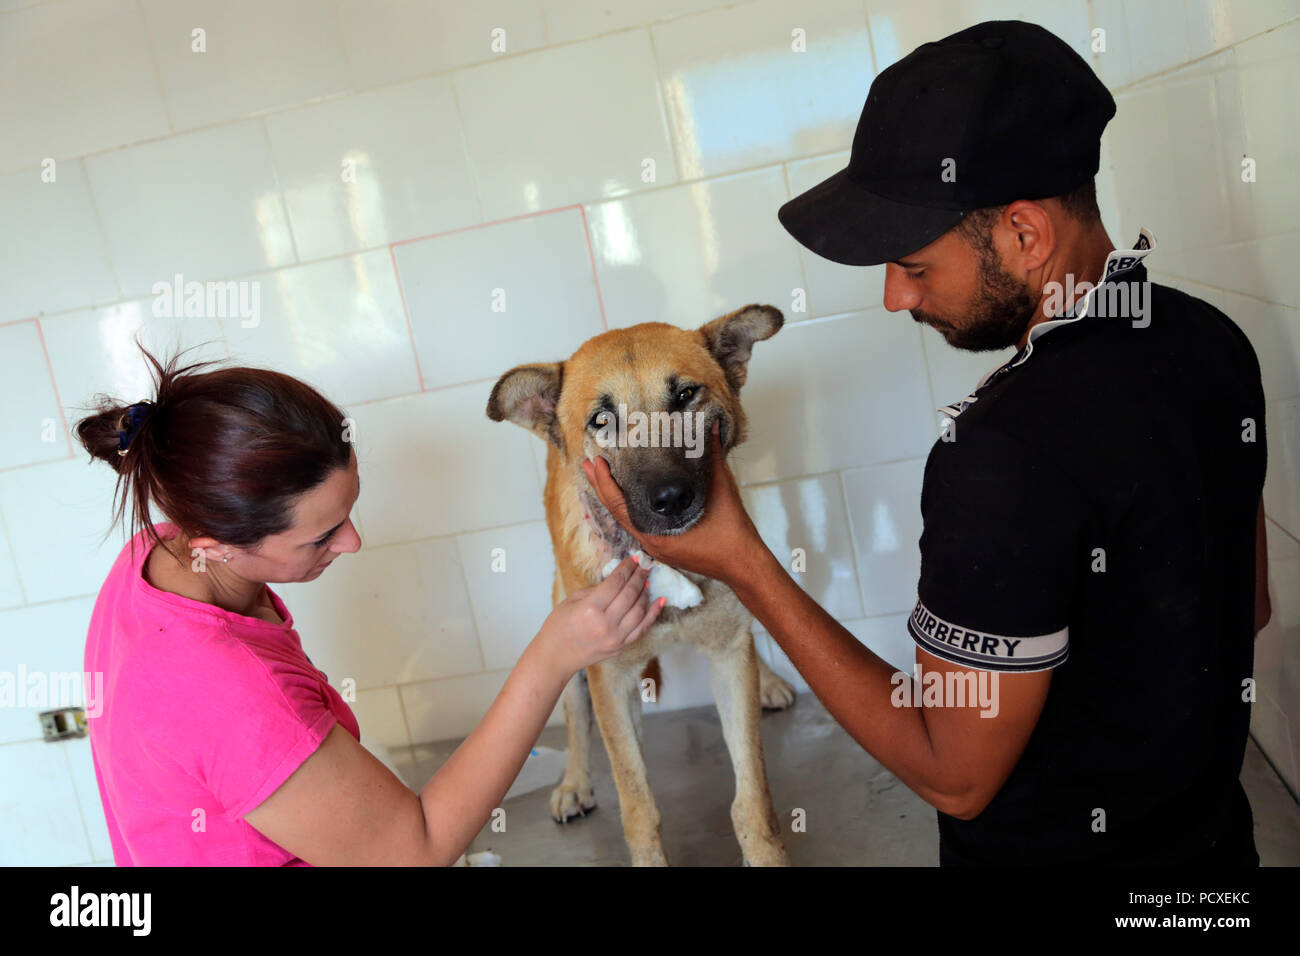 Mangy Dog High Resolution Stock Photography And Images Alamy